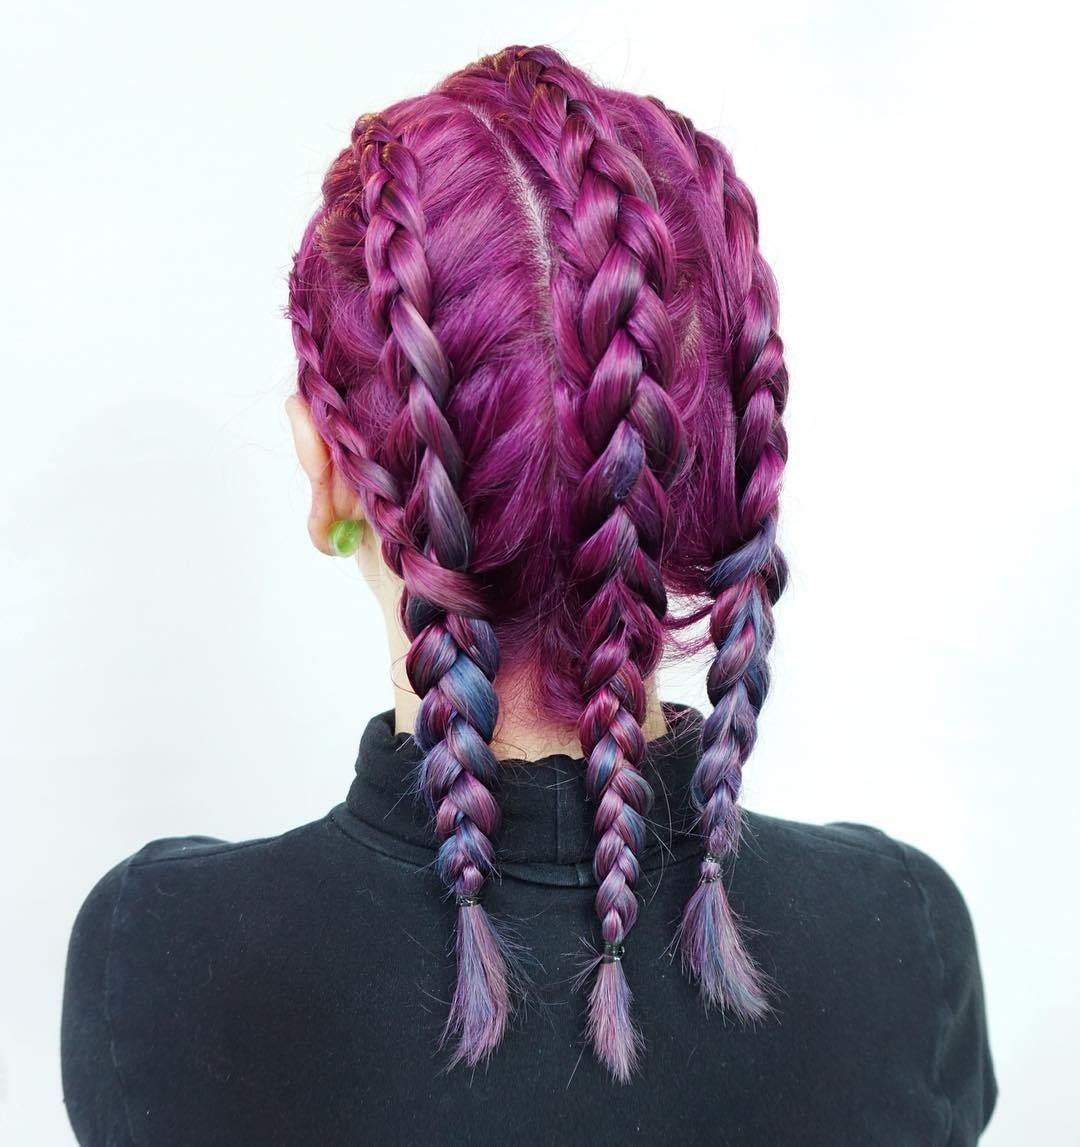 Braided+Hairstyle+For+Lilac+Hair